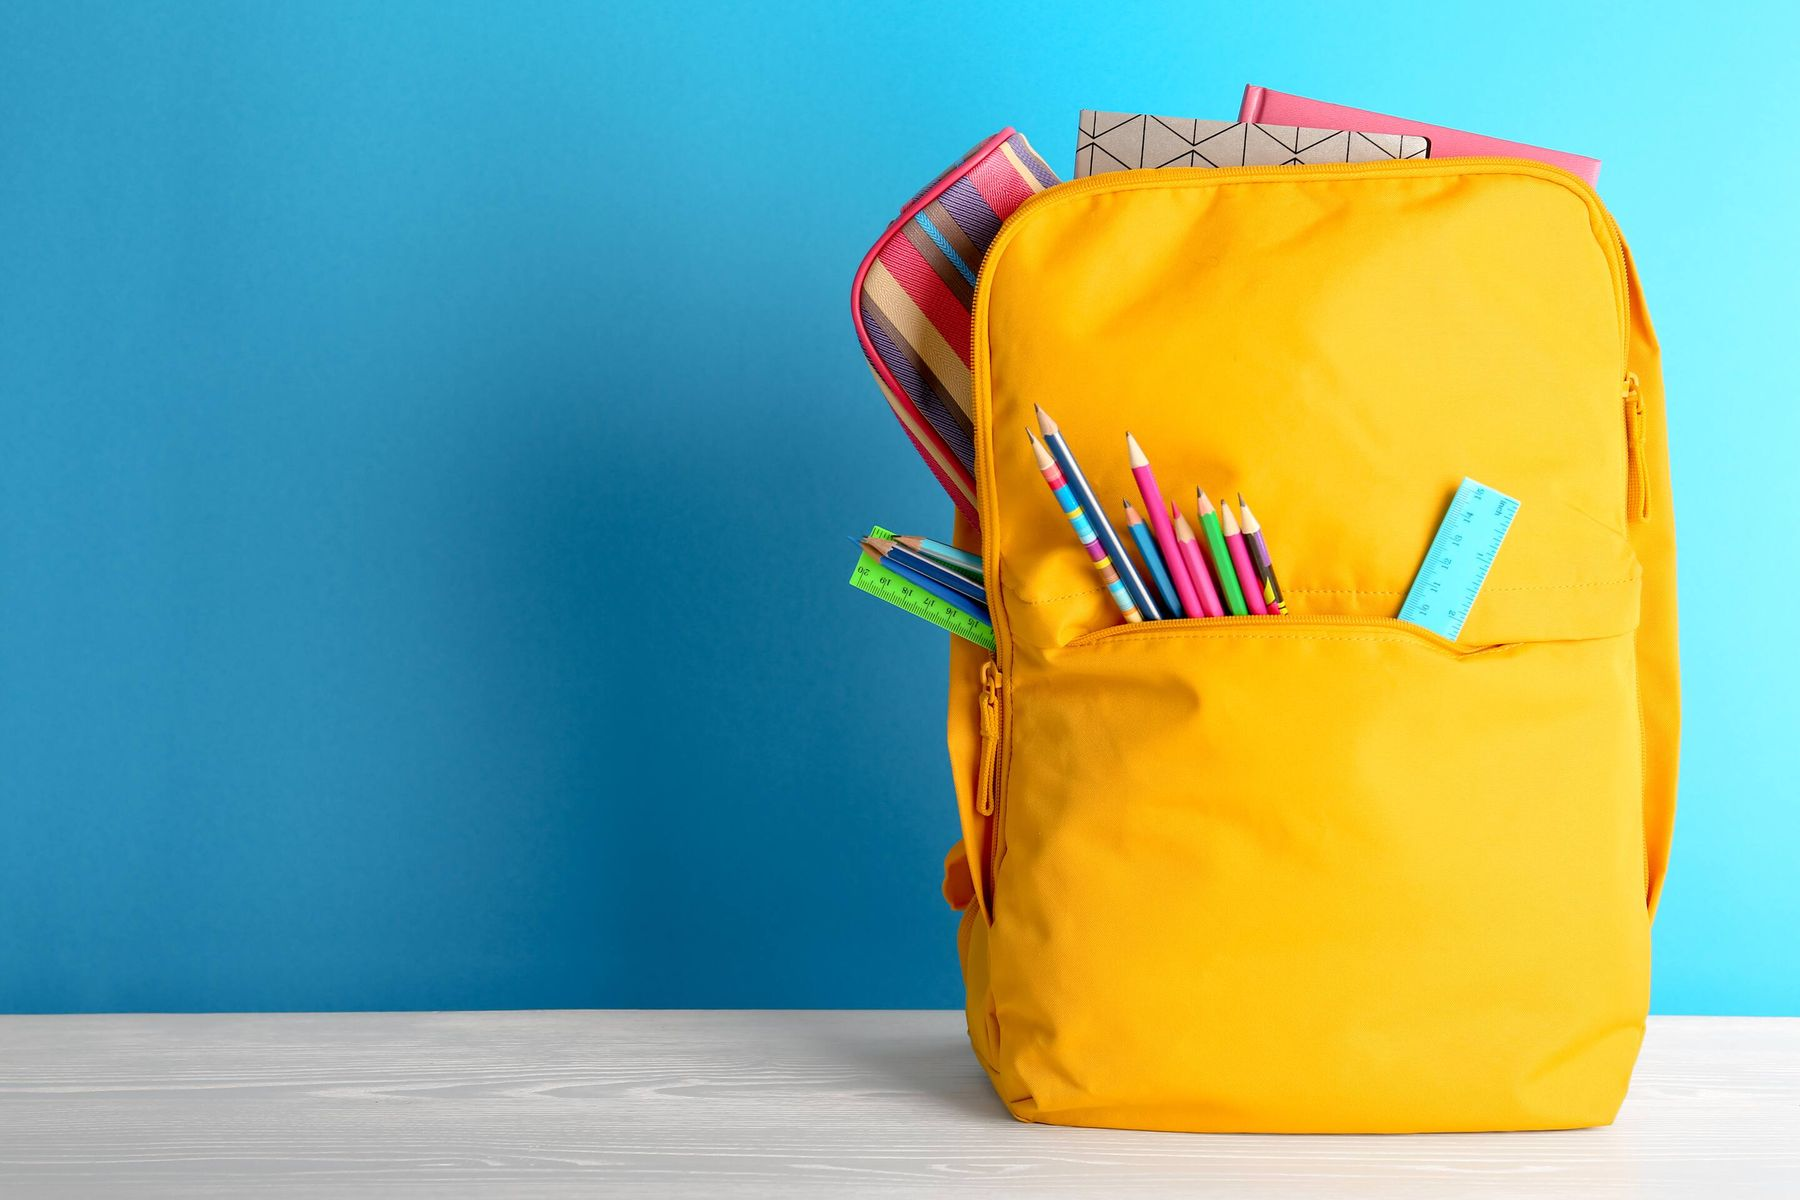 How to clean glue stains from your kid's school bag?